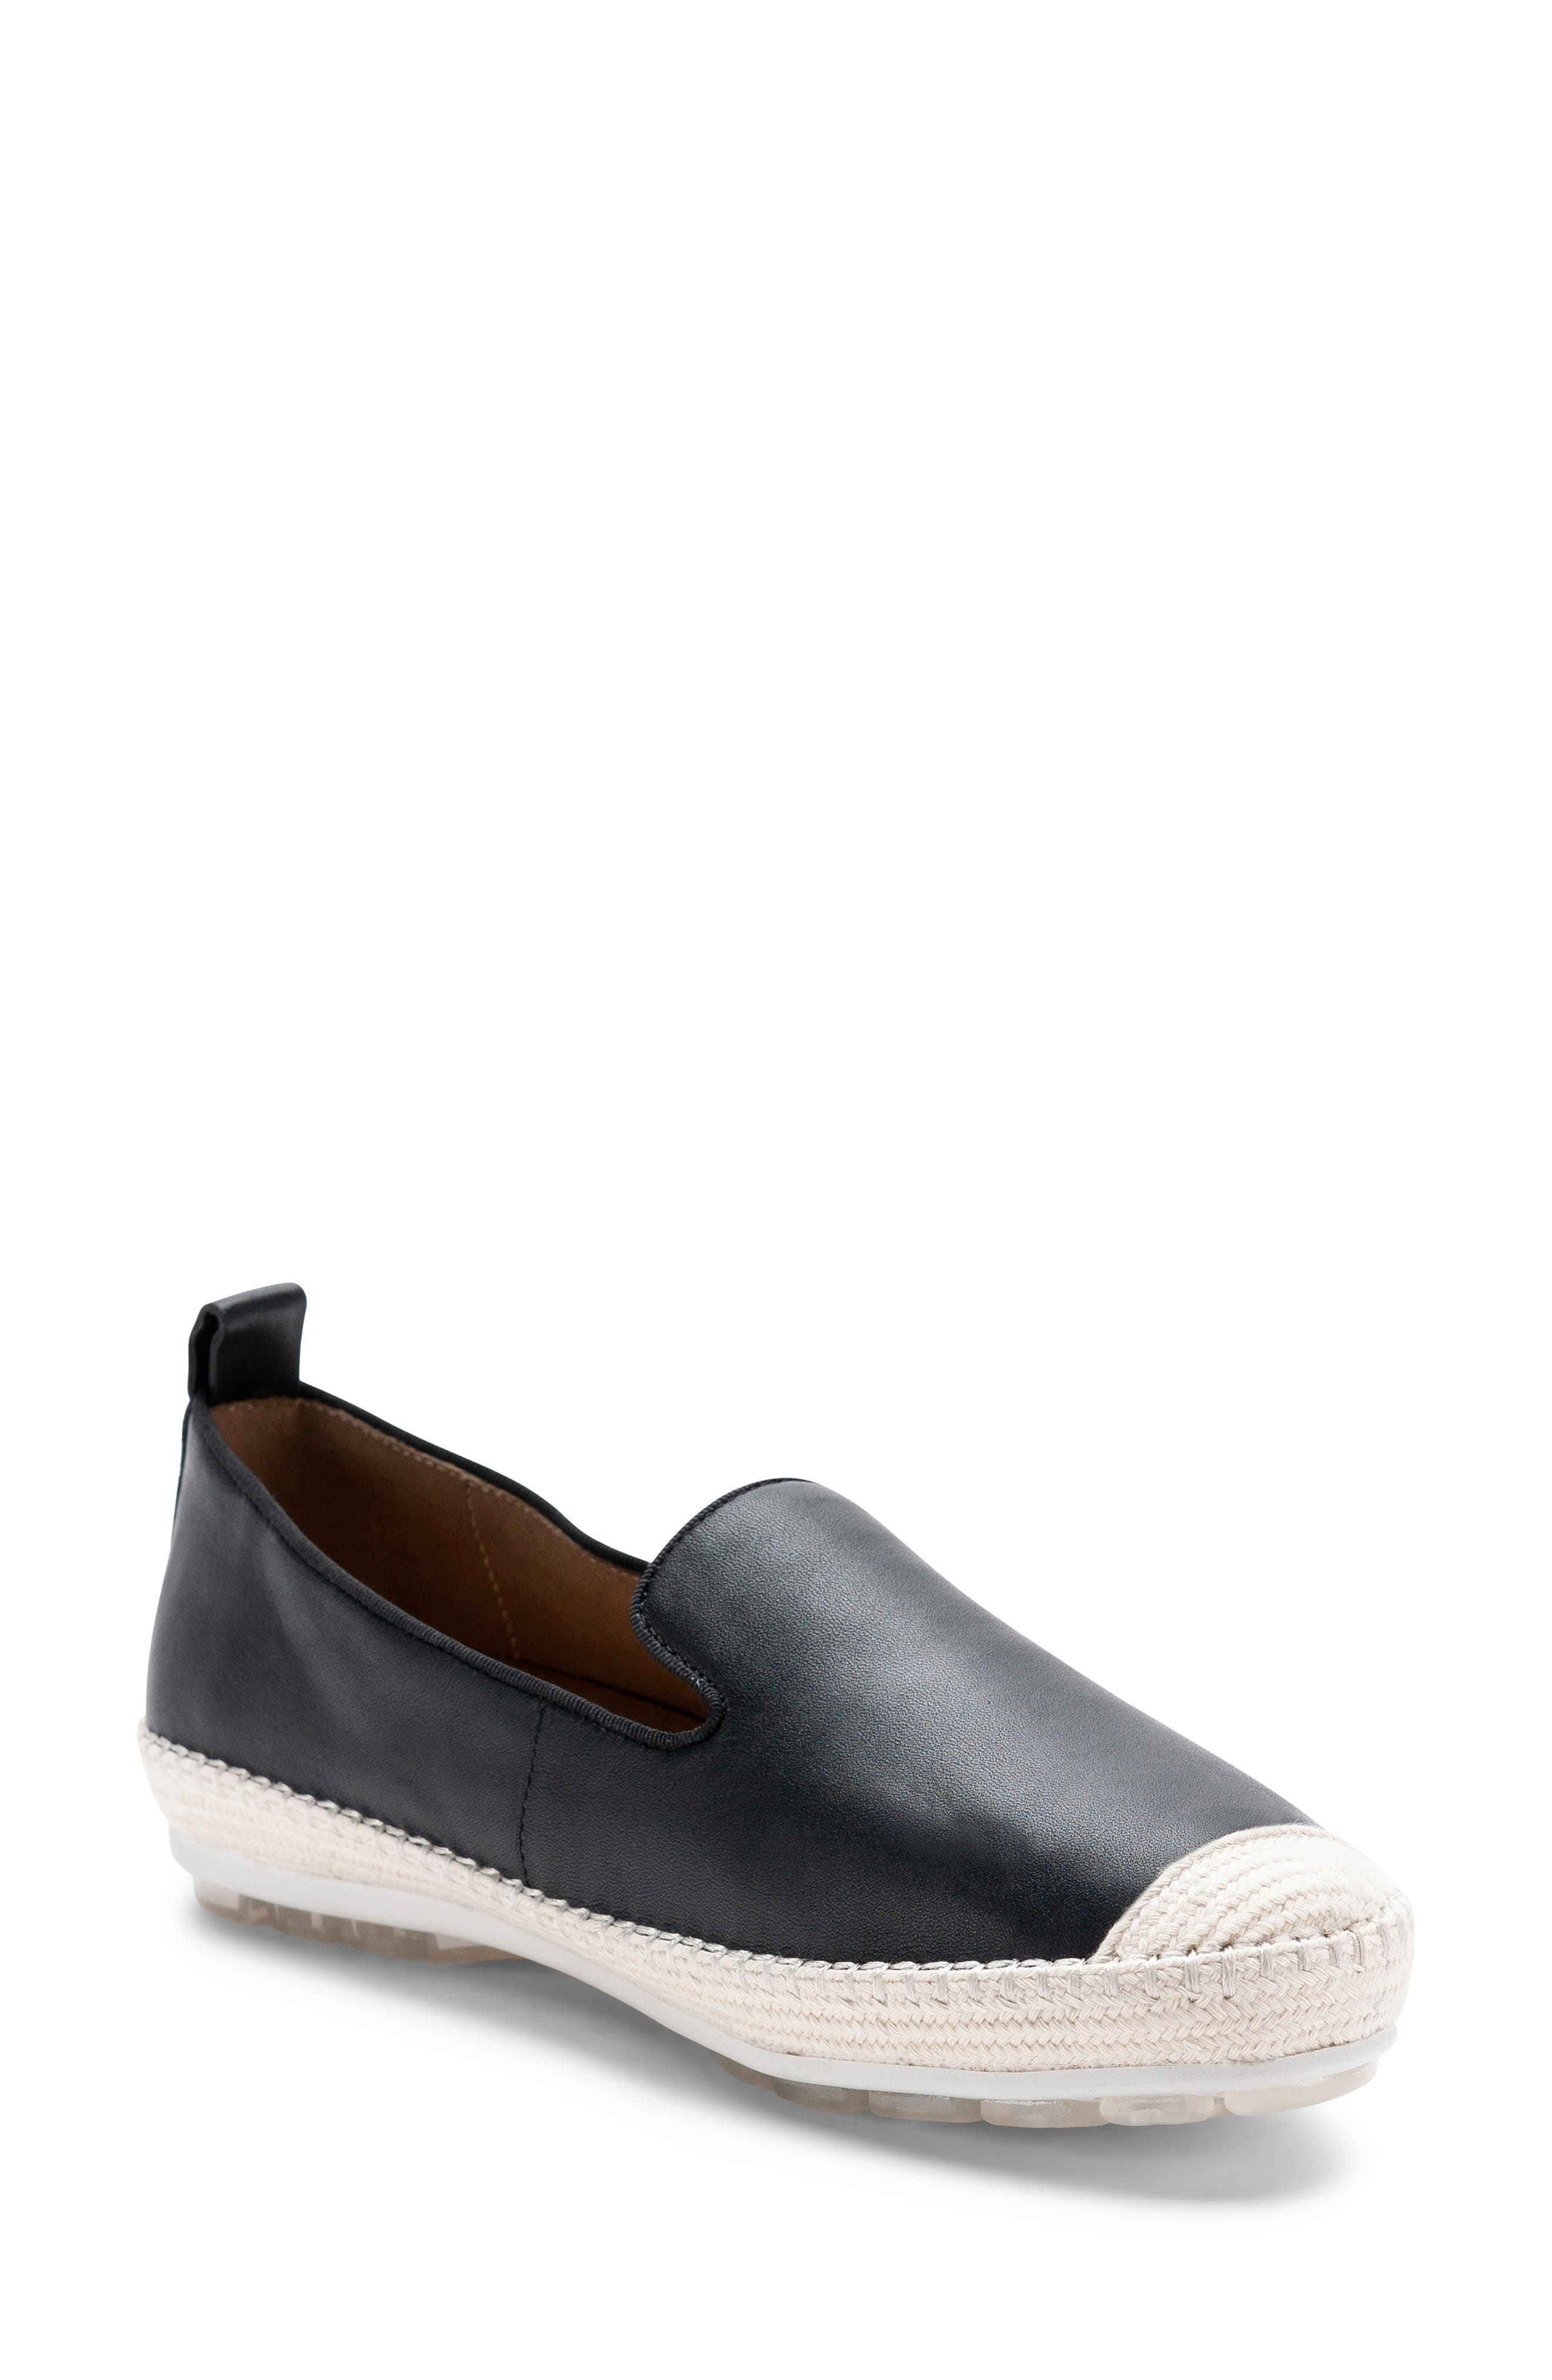 BLONDO, Bella Waterproof Espadrille Flat, Main thumbnail 1, color, BLACK LEATHER